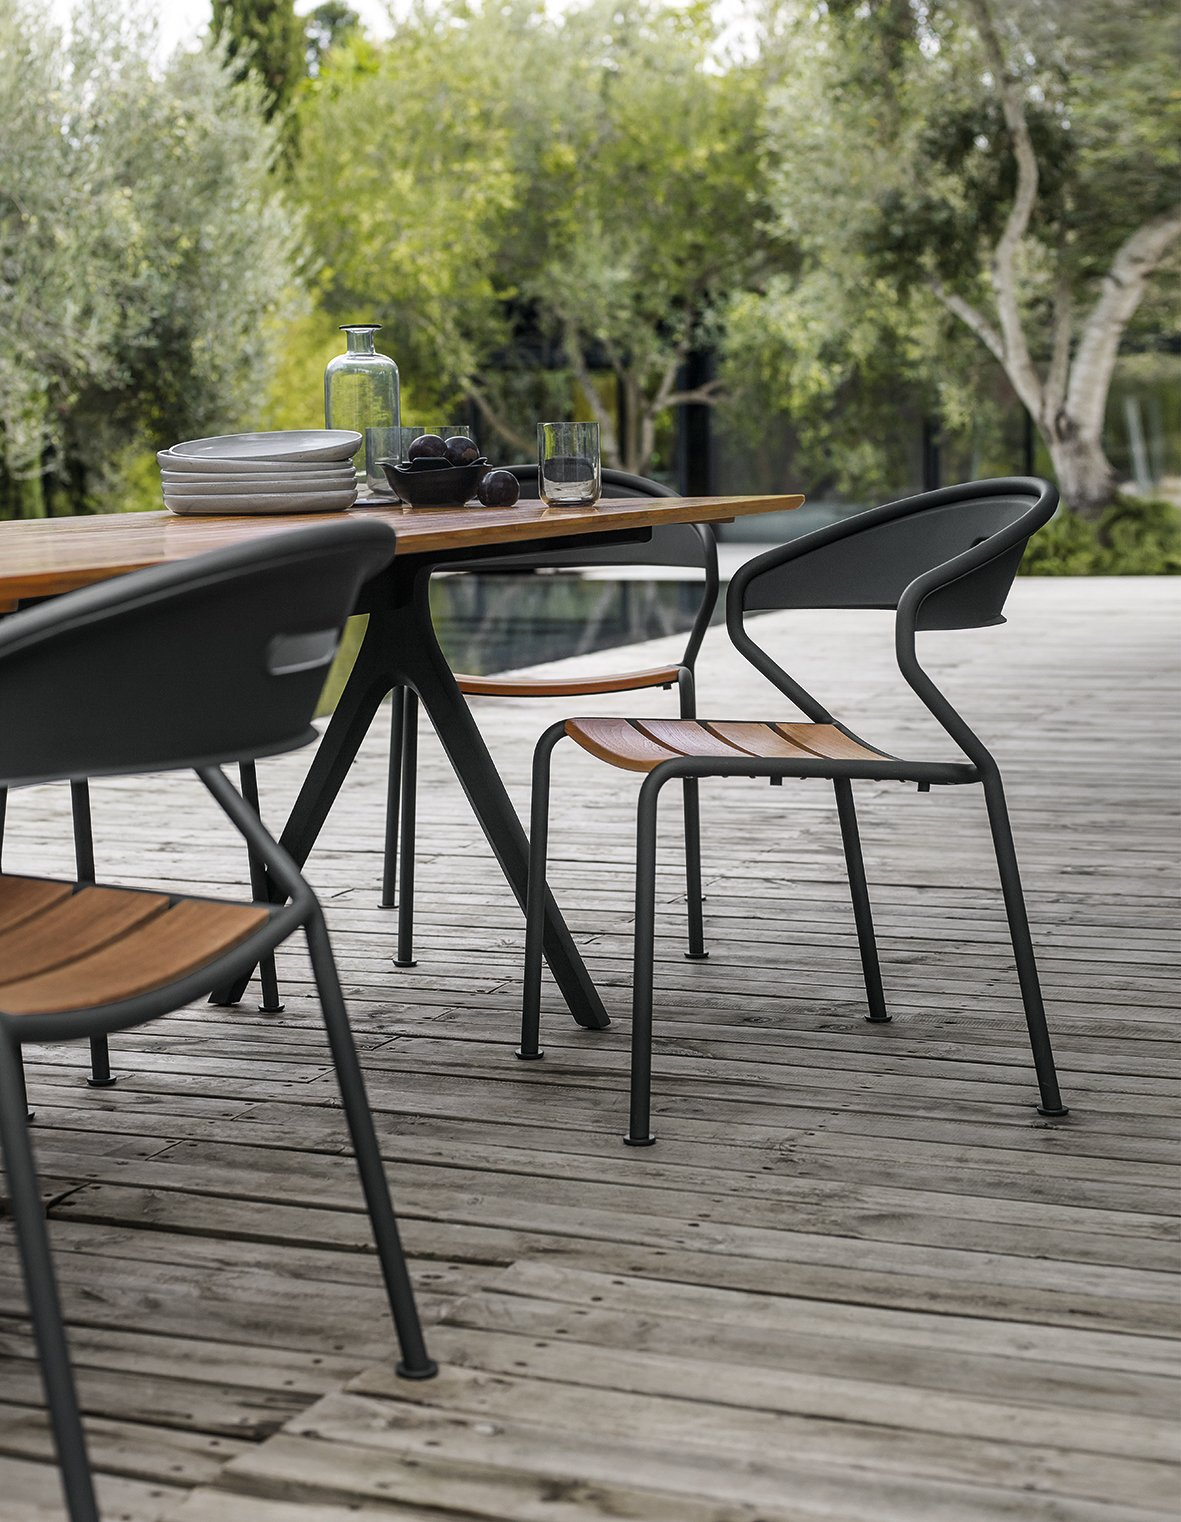 Stackable Curve chair with buffed teak in color Meteor. Tagged: Table, Chair, Outdoor, Large Pools, Tubs, Shower, Large Patio, Porch, Deck, Small Patio, Porch, Deck, Small Pools, Tubs, Shower, Swimming Pools, Tubs, Shower, Wood Patio, Porch, Deck, Trees, Back Yard, and Hardscapes.  Dining Chairs by Gloster Furniture